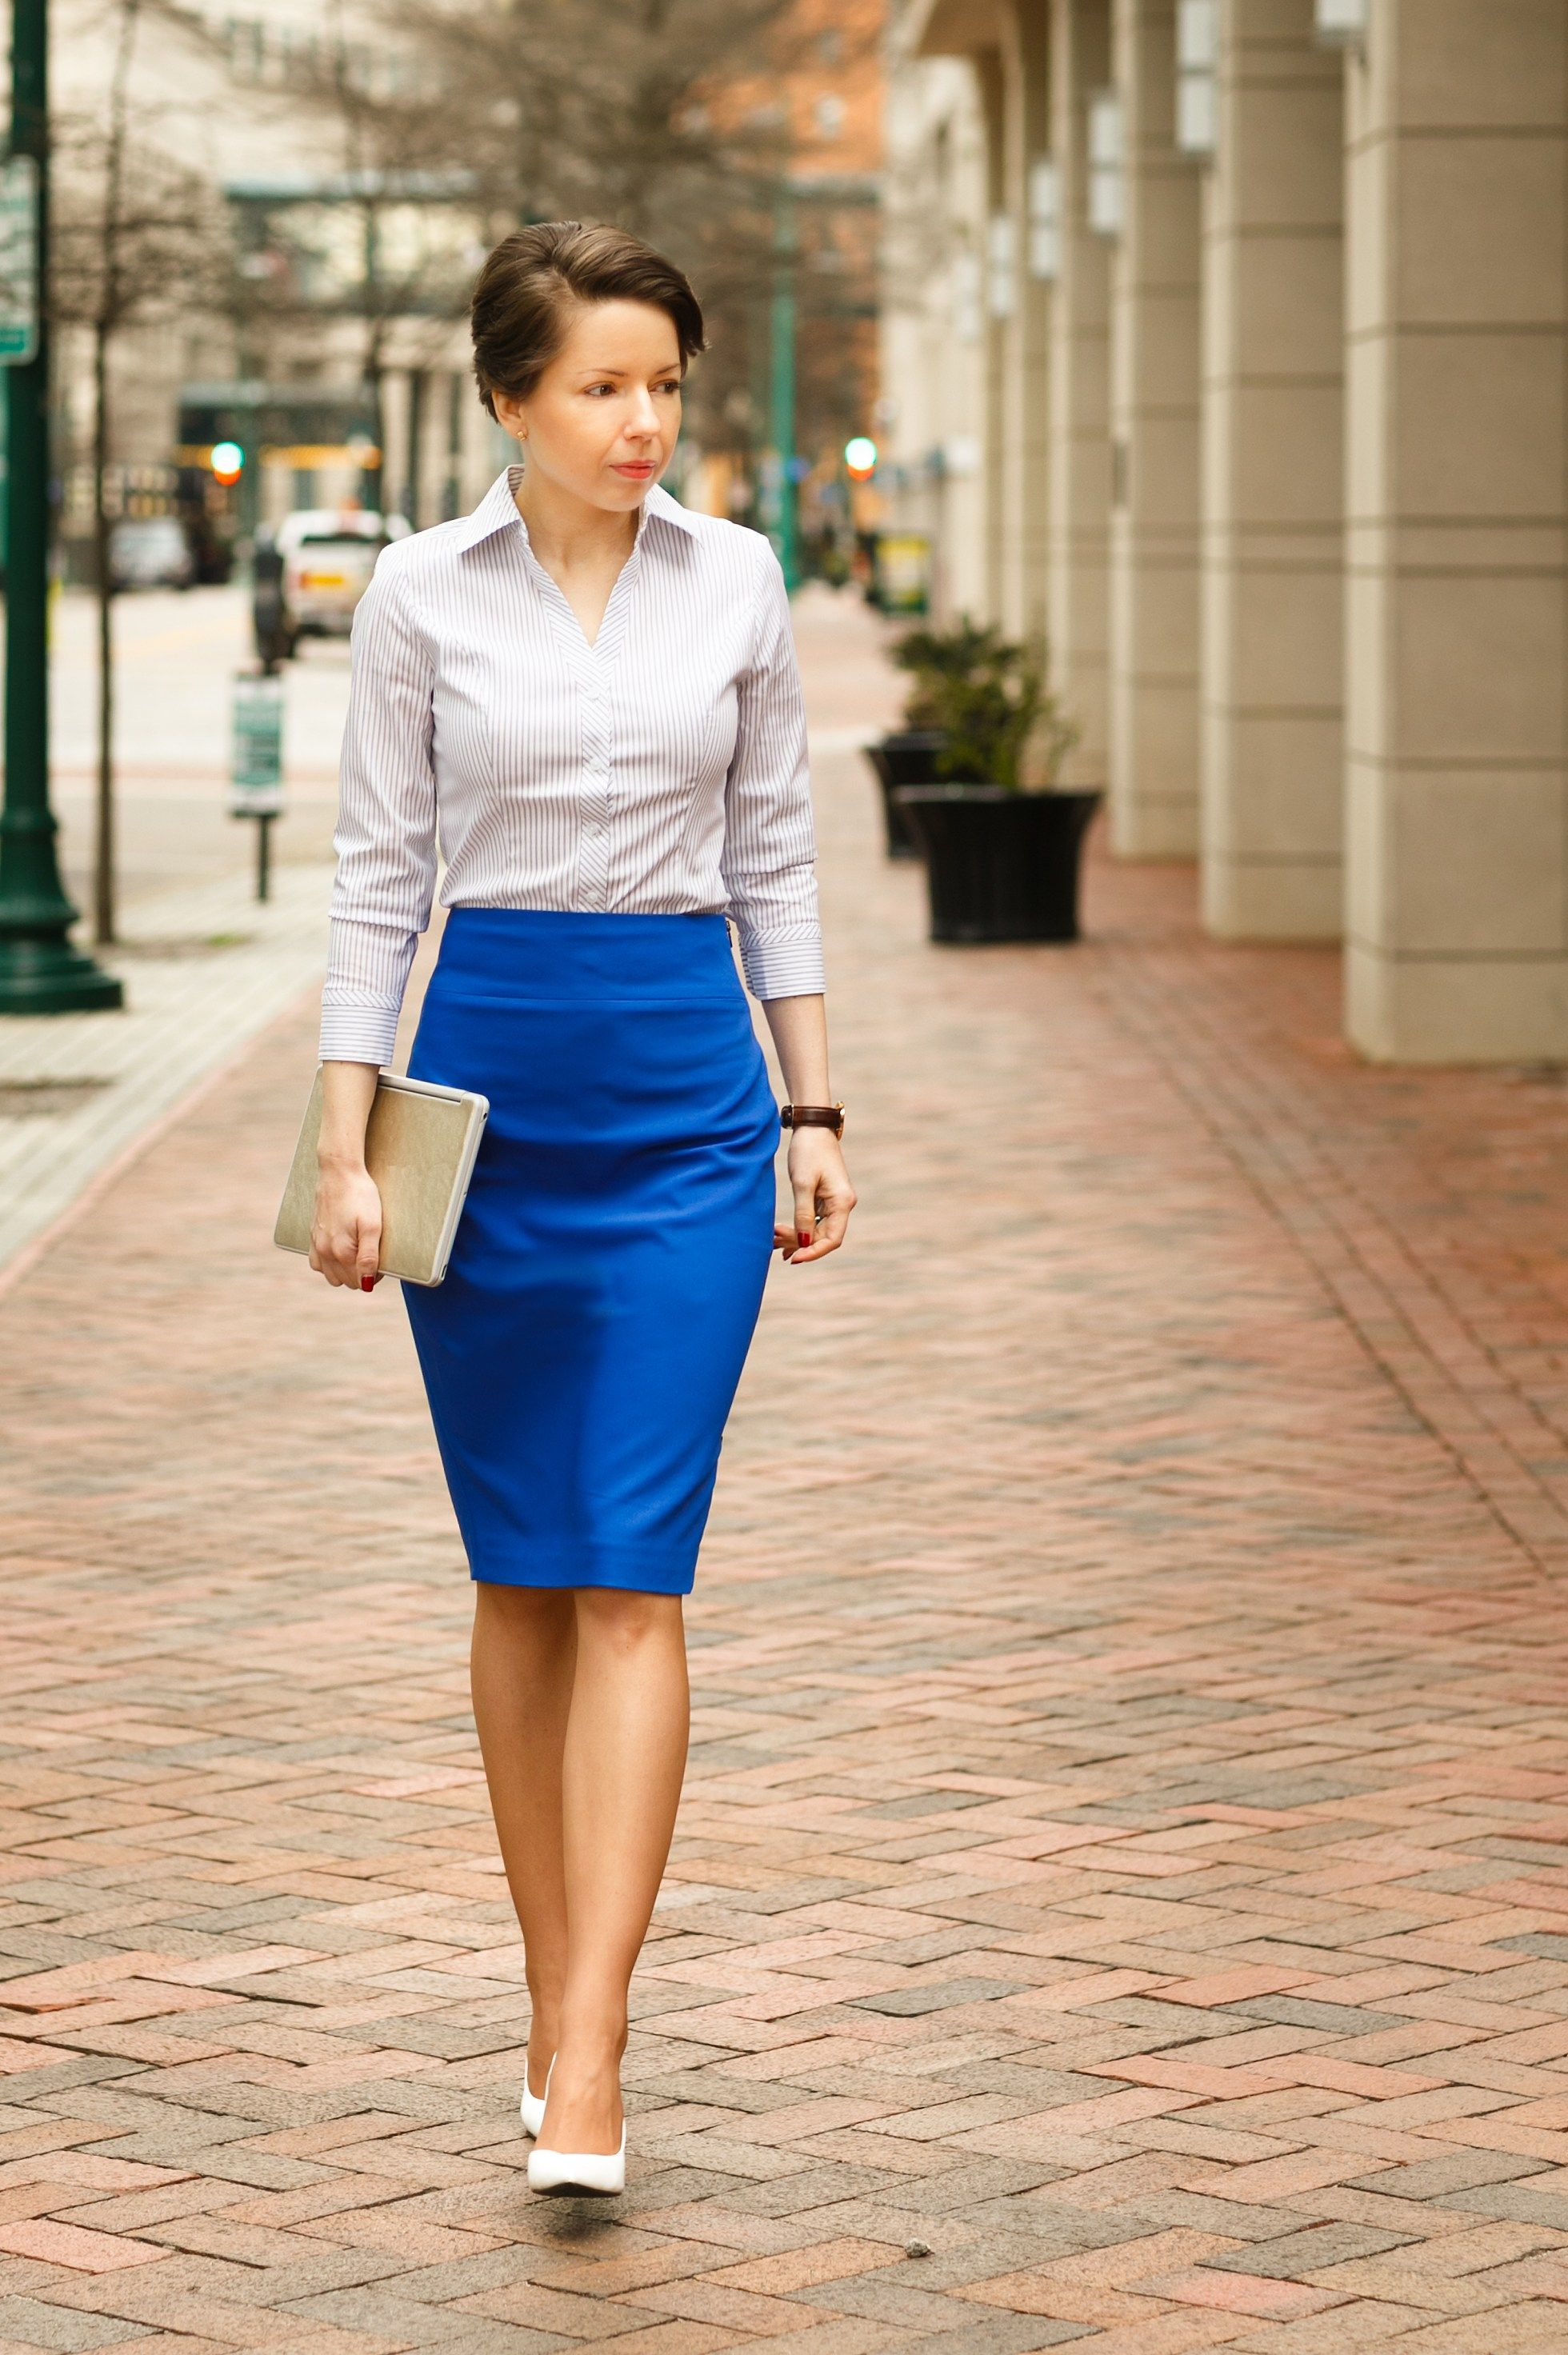 196dba87be work uniform | striped shirt, cobalt blue pencil skirt - red reticule